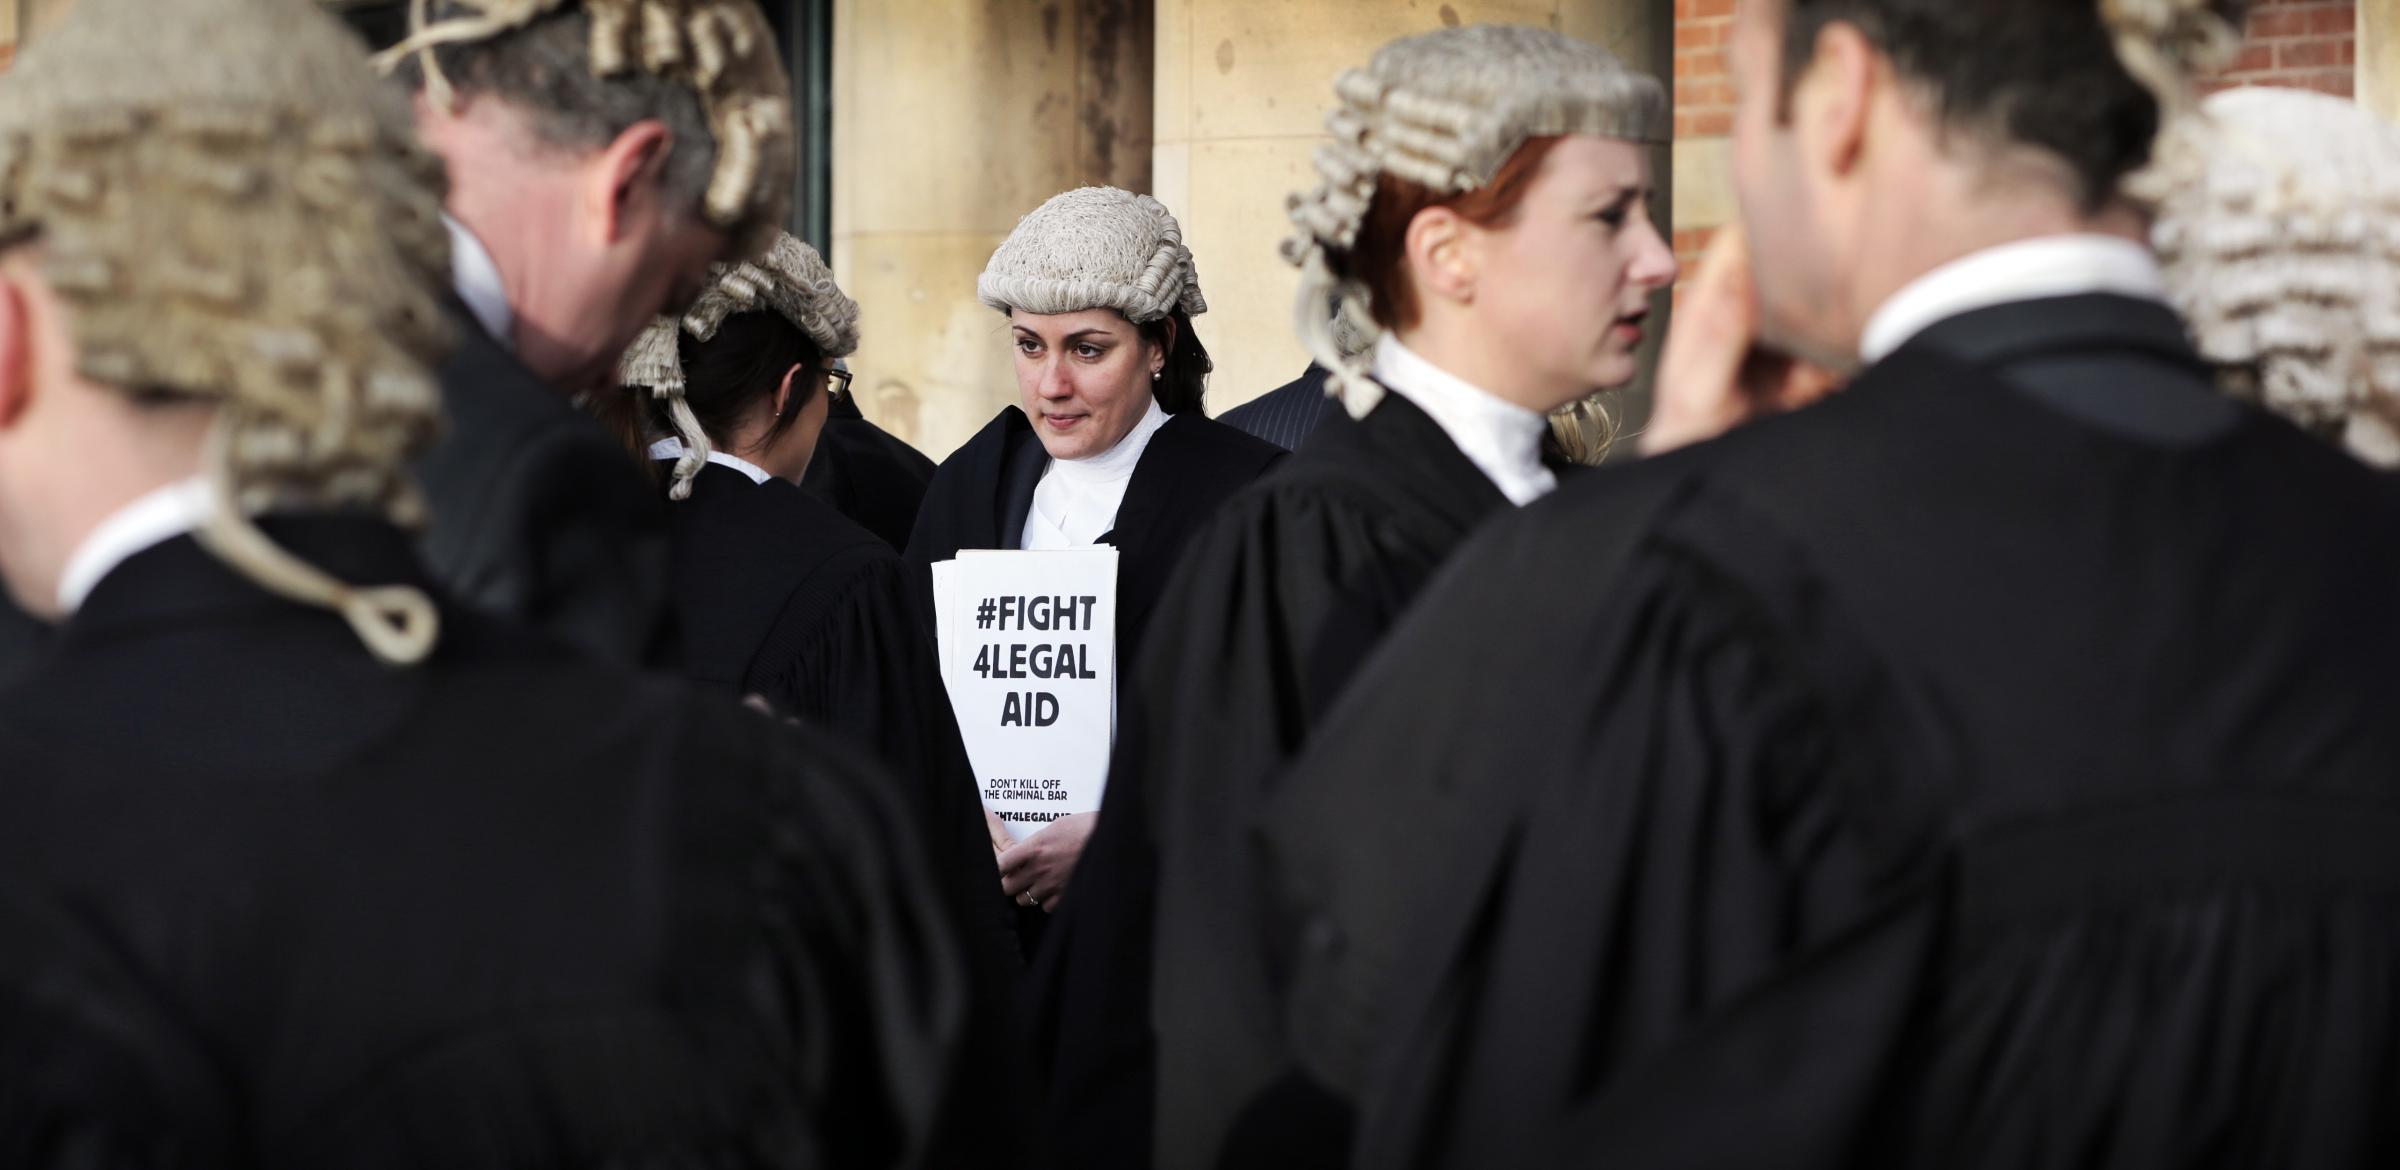 Barristers and solicitors take unprecedented action to protest against cuts to legal aid fees